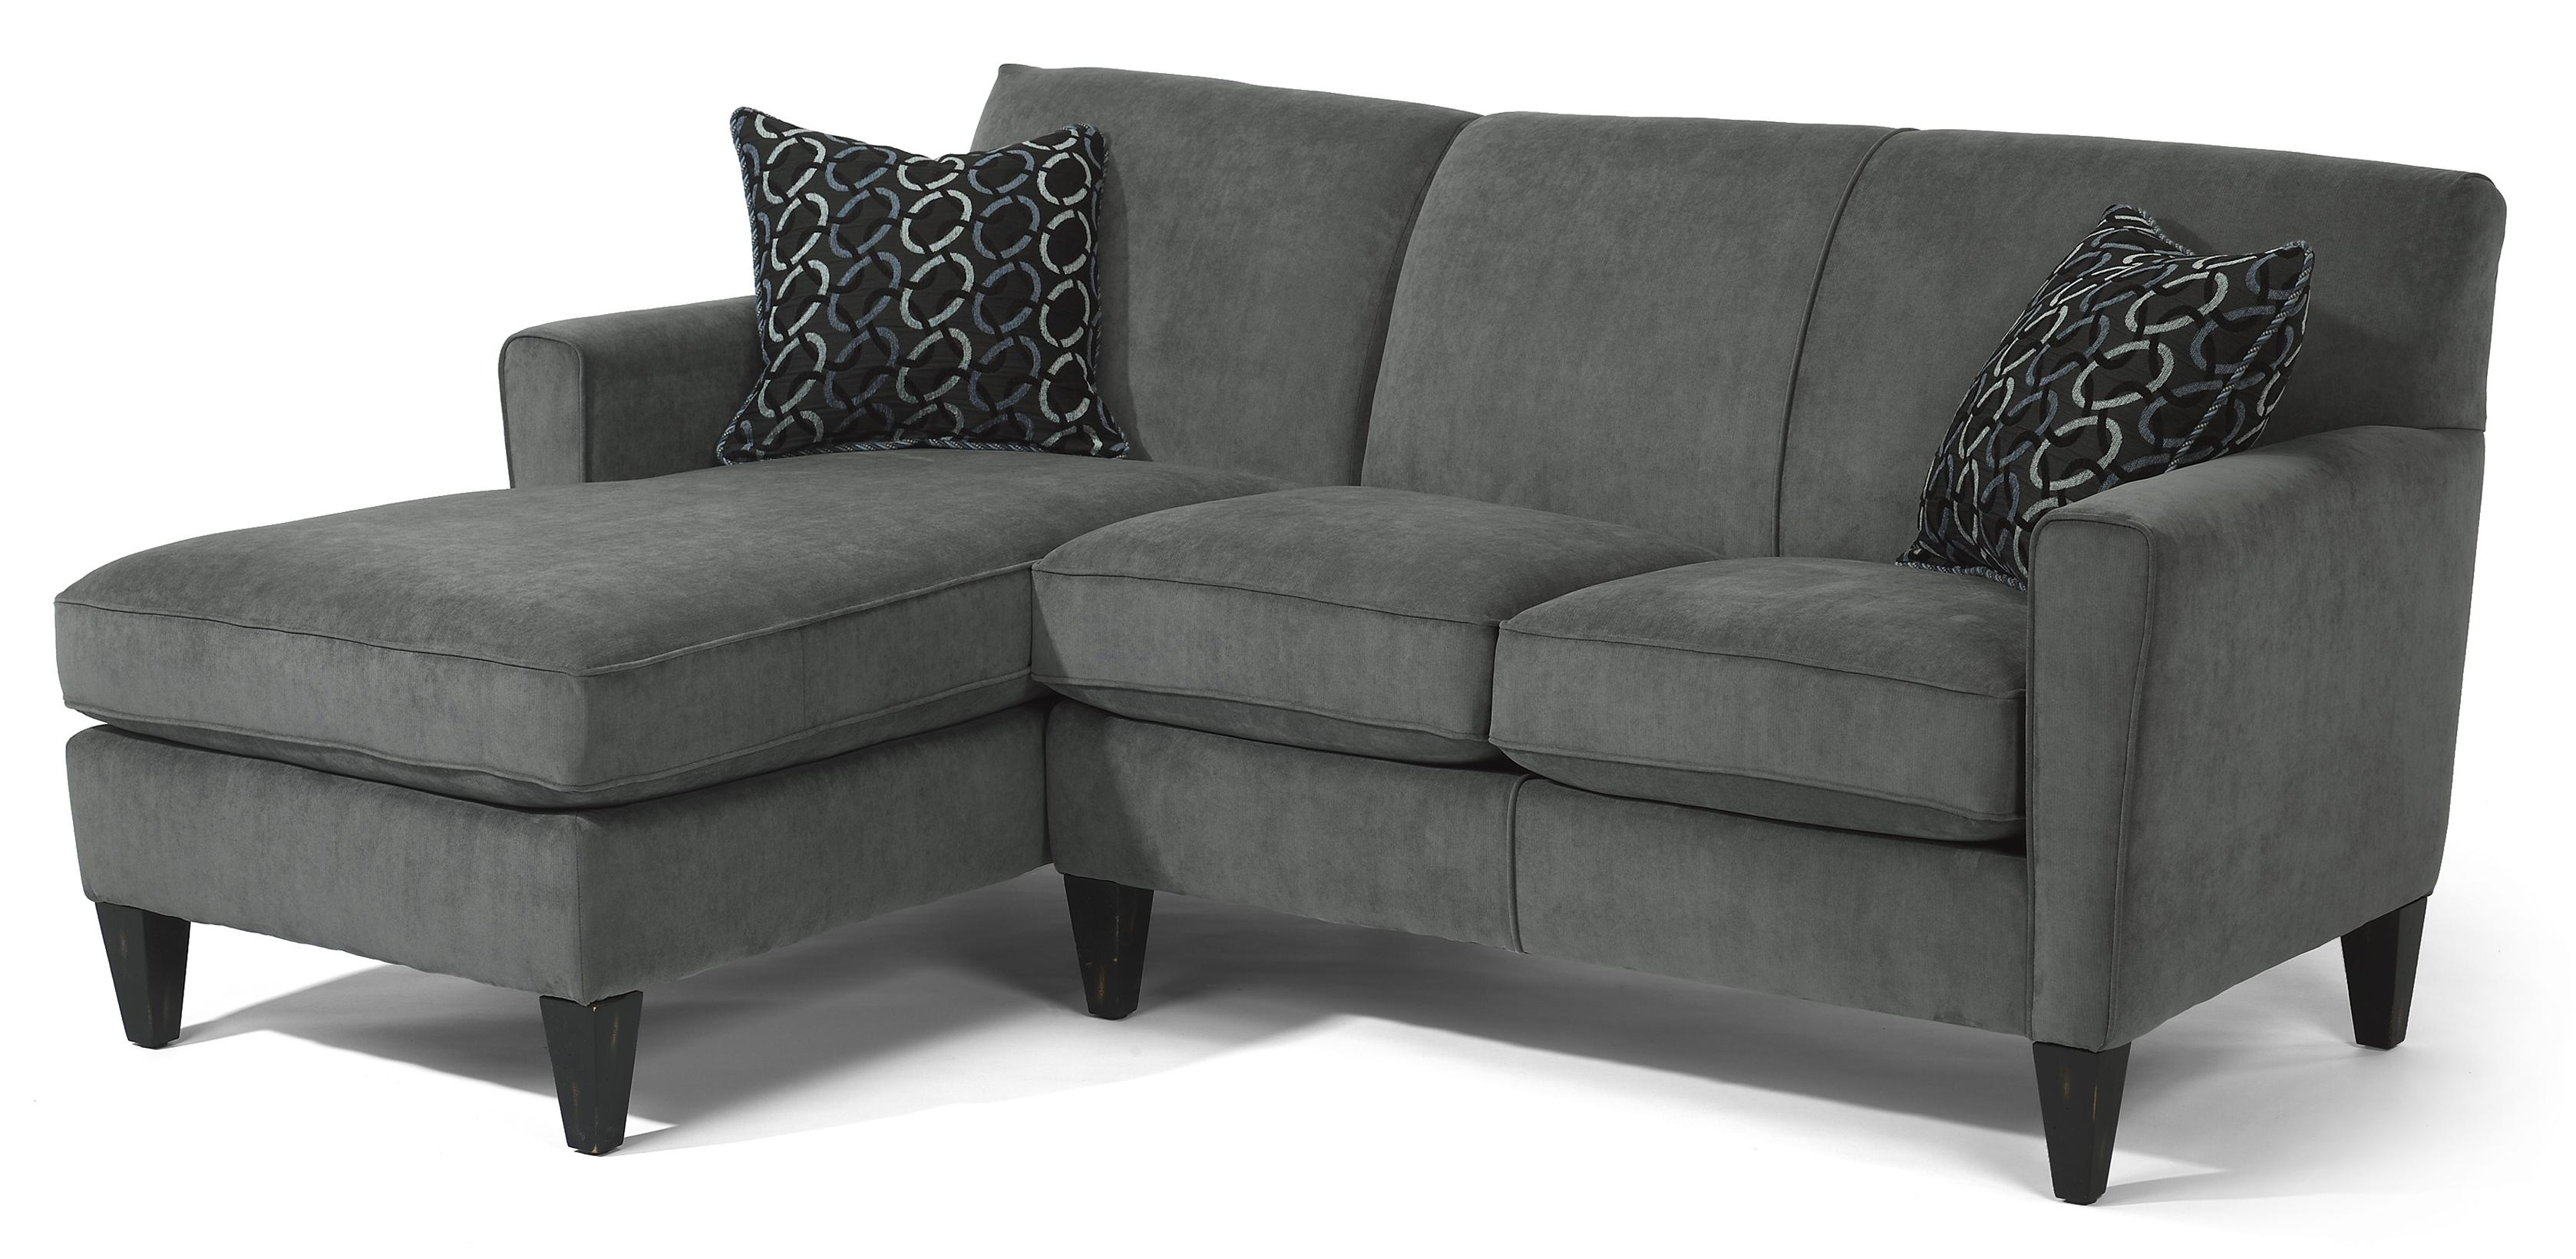 Flexsteel Digby Contemporary L Shape Sectional Sofa   AHFA   Sofa     Flexsteel Digby Contemporary L Shape Sectional Sofa   AHFA   Sofa Sectional  Dealer Locator